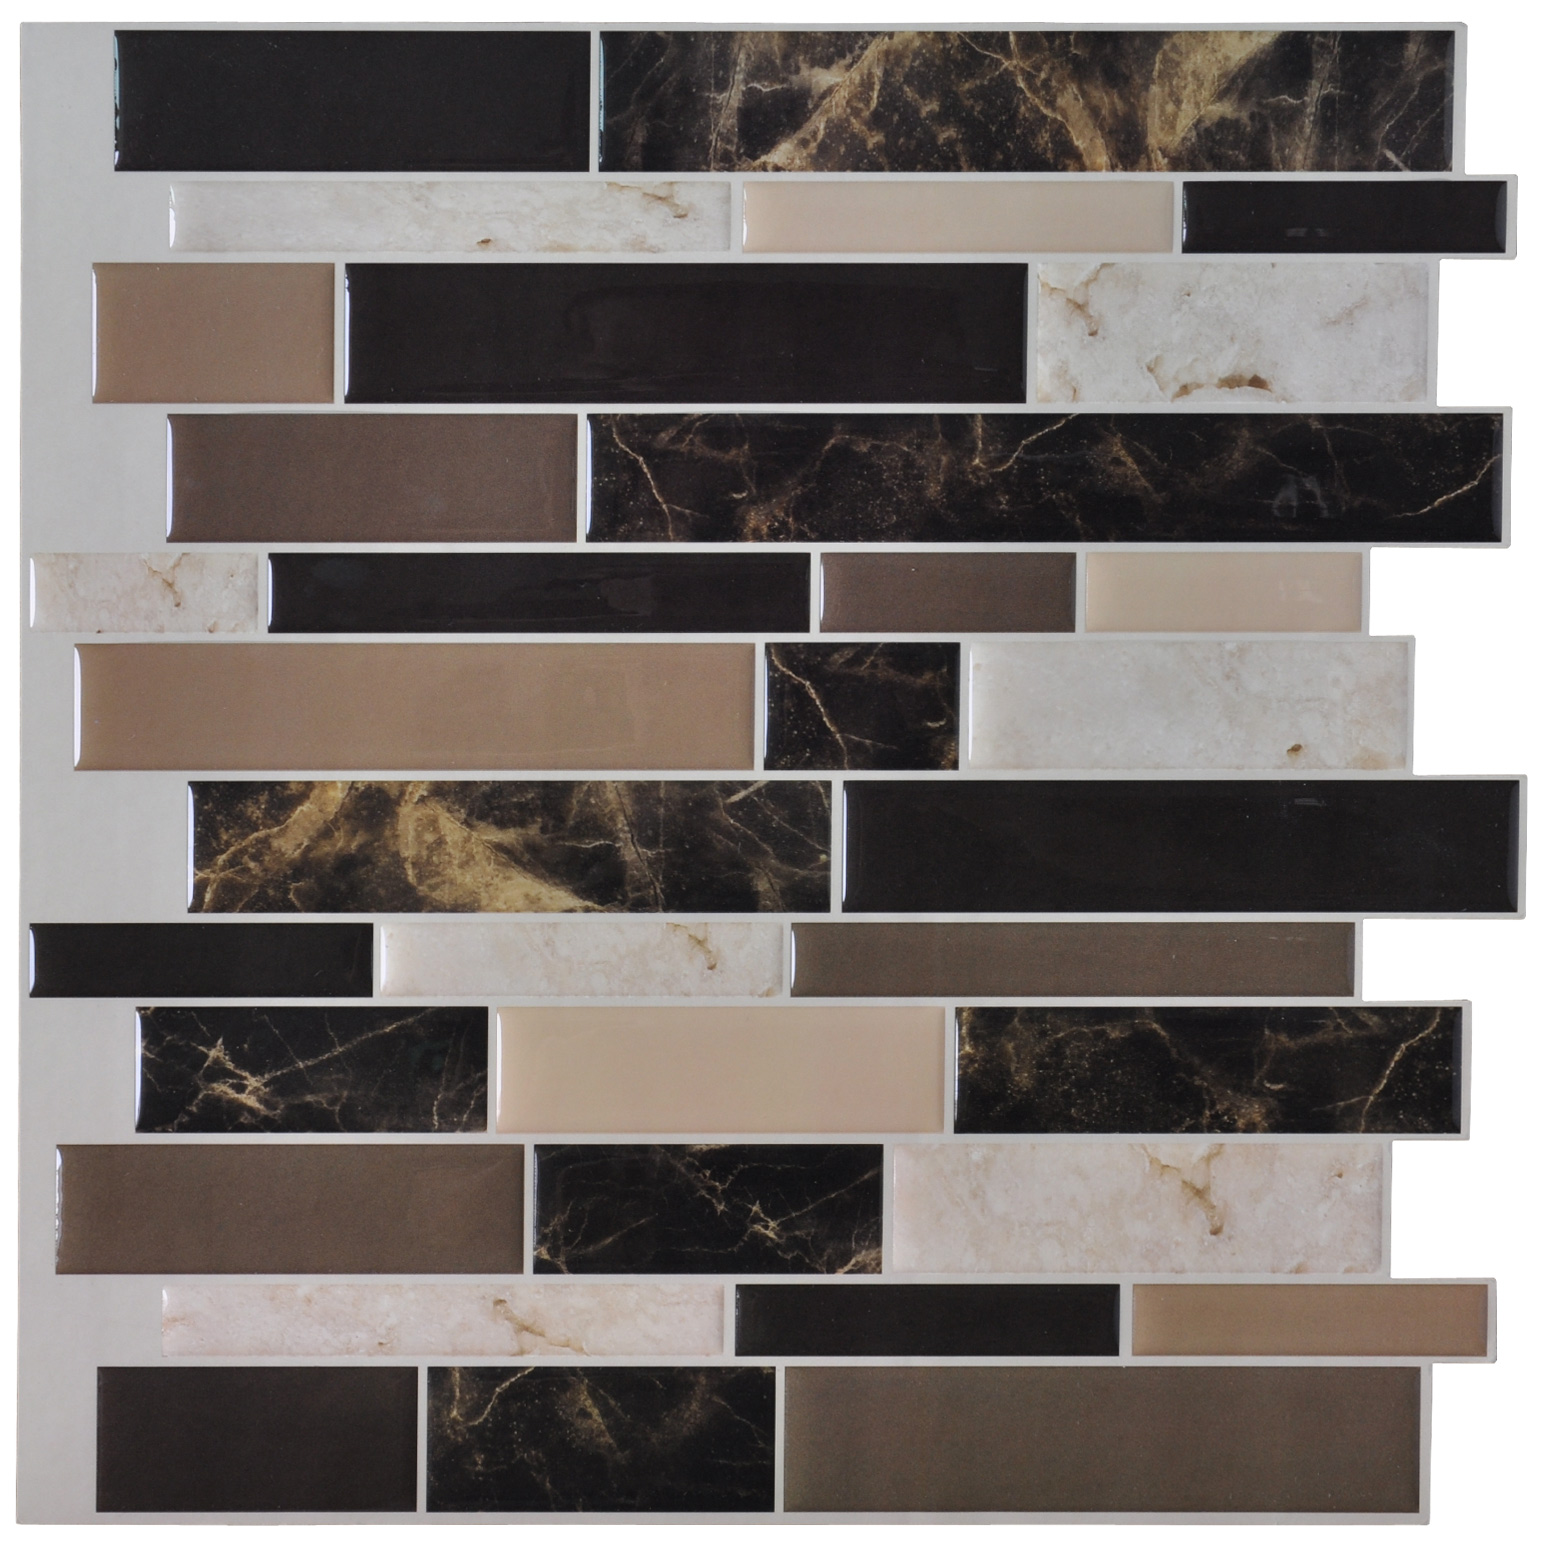 Vinyl self adhesive backsplash tiles for kitchen 12 x12 set of 6 Backsplash wall tile